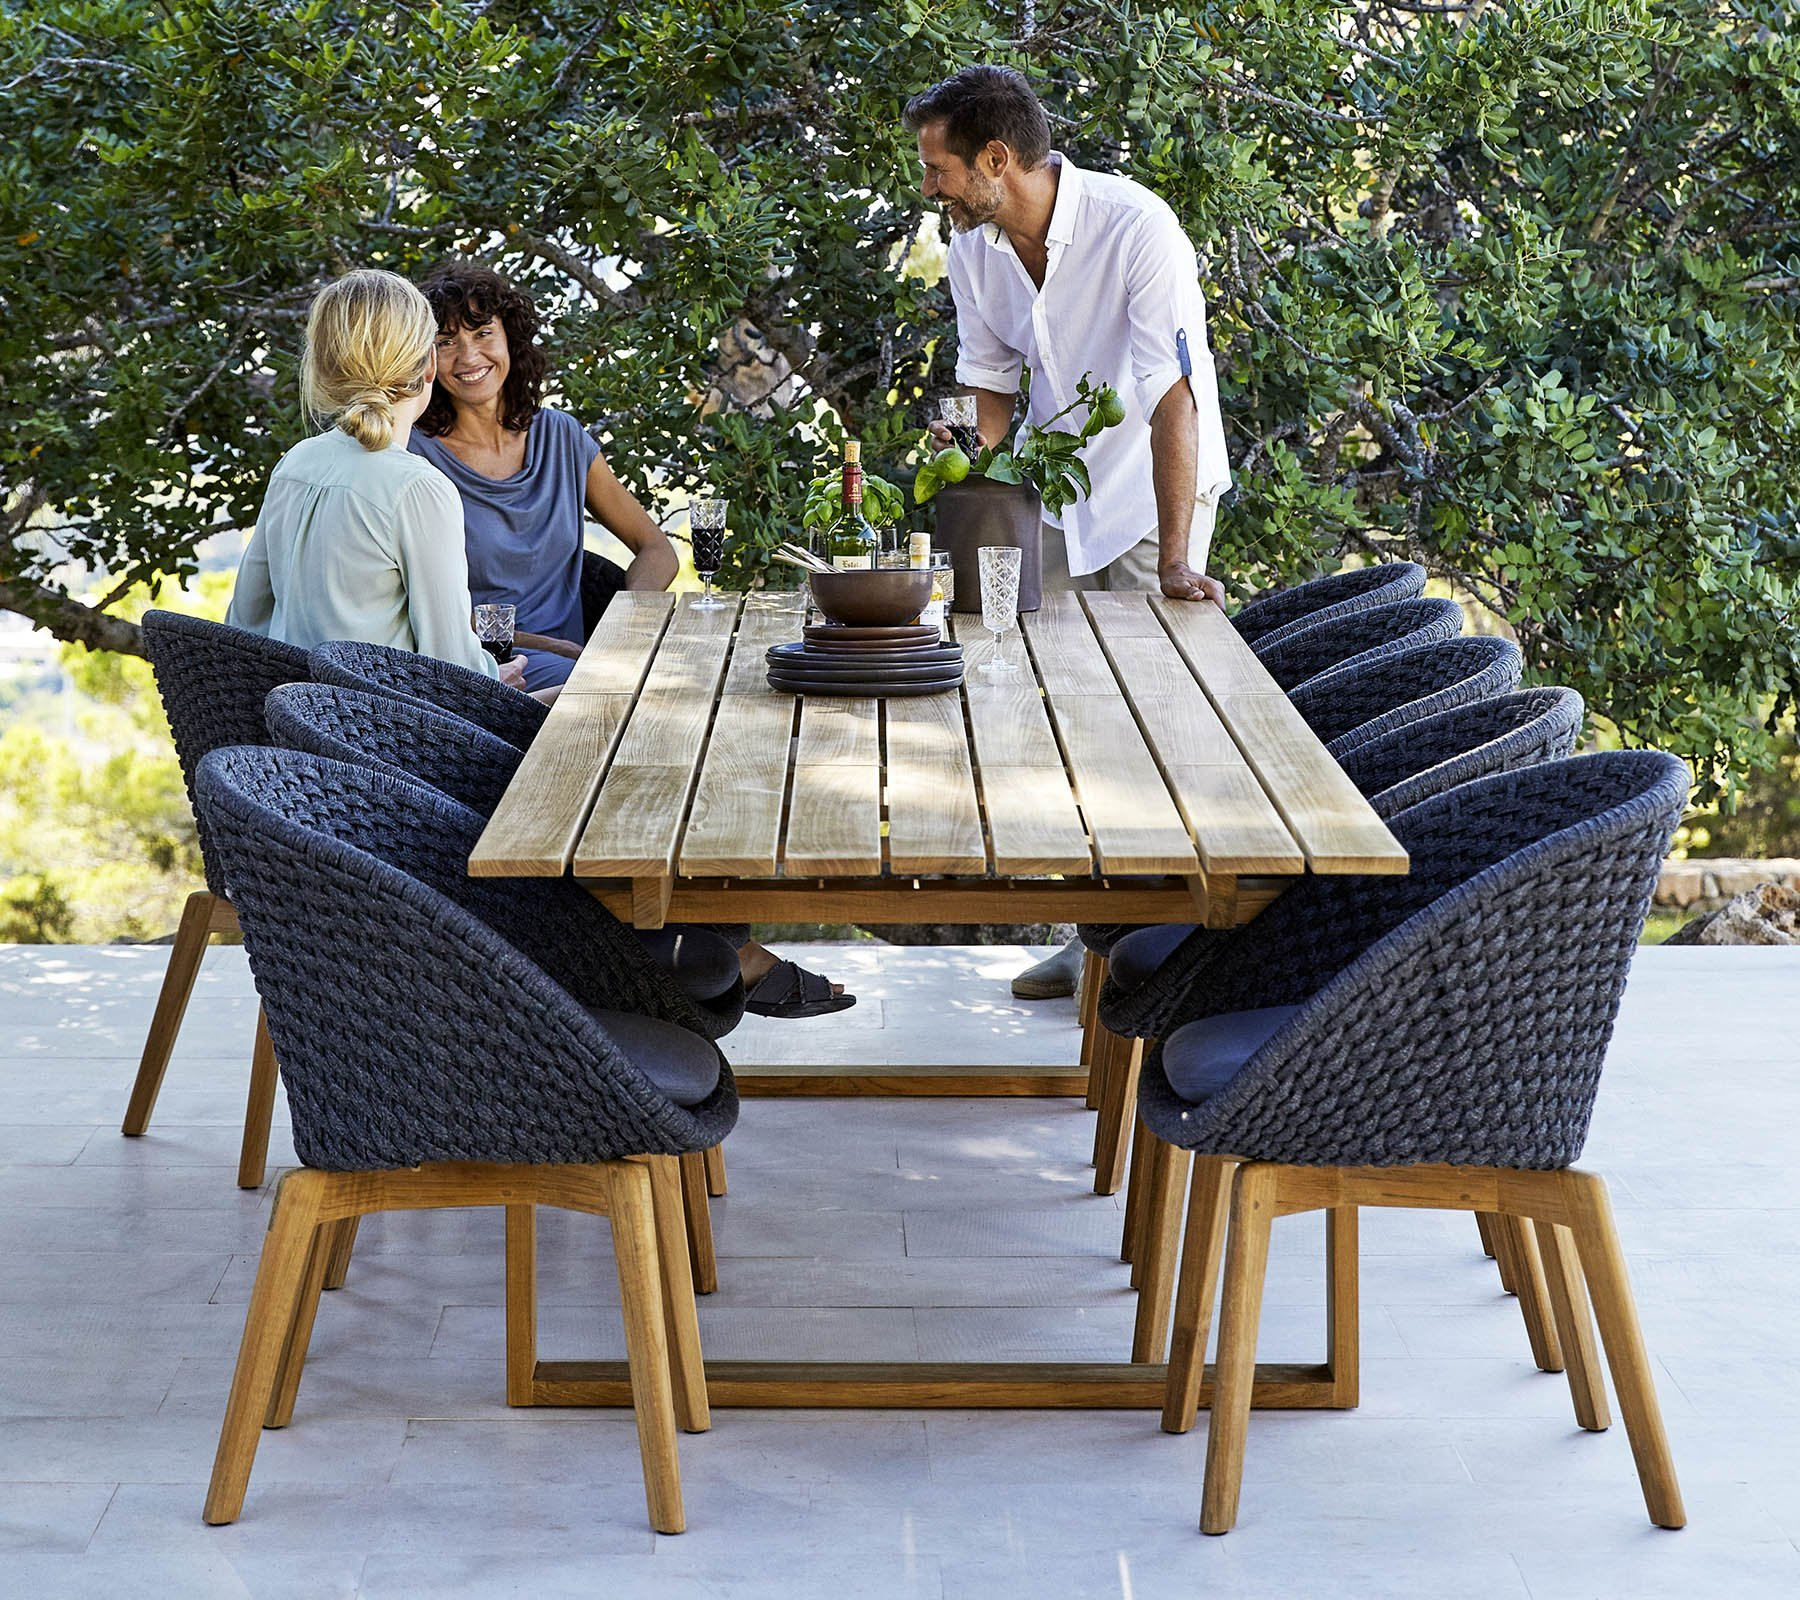 Endless Dining Table from Cane-line, designed by Foersom & Hiort-Lorenzen MDD